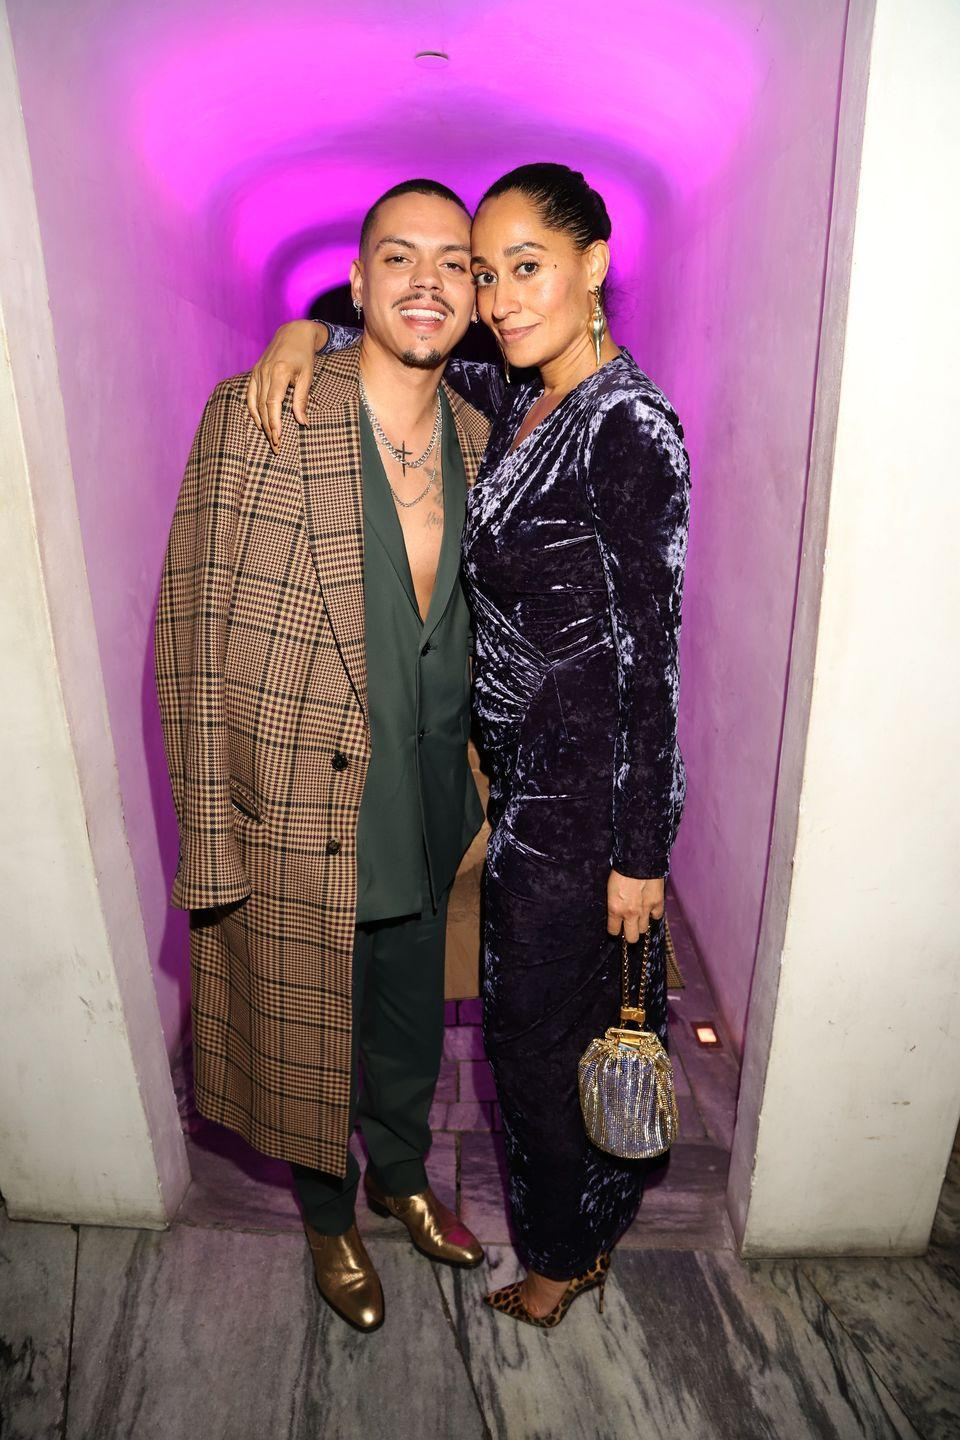 <p>Evan Ross and Tracee Ellis Ross are half-siblings but were both clearly blessed with their mother, Diana Ross's, good looks. Tracee is the daughter of Diana's first husband, Robert Ellis Silberstein, and Evan's father is Arne Naess Jr., the singer's second husband.</p>